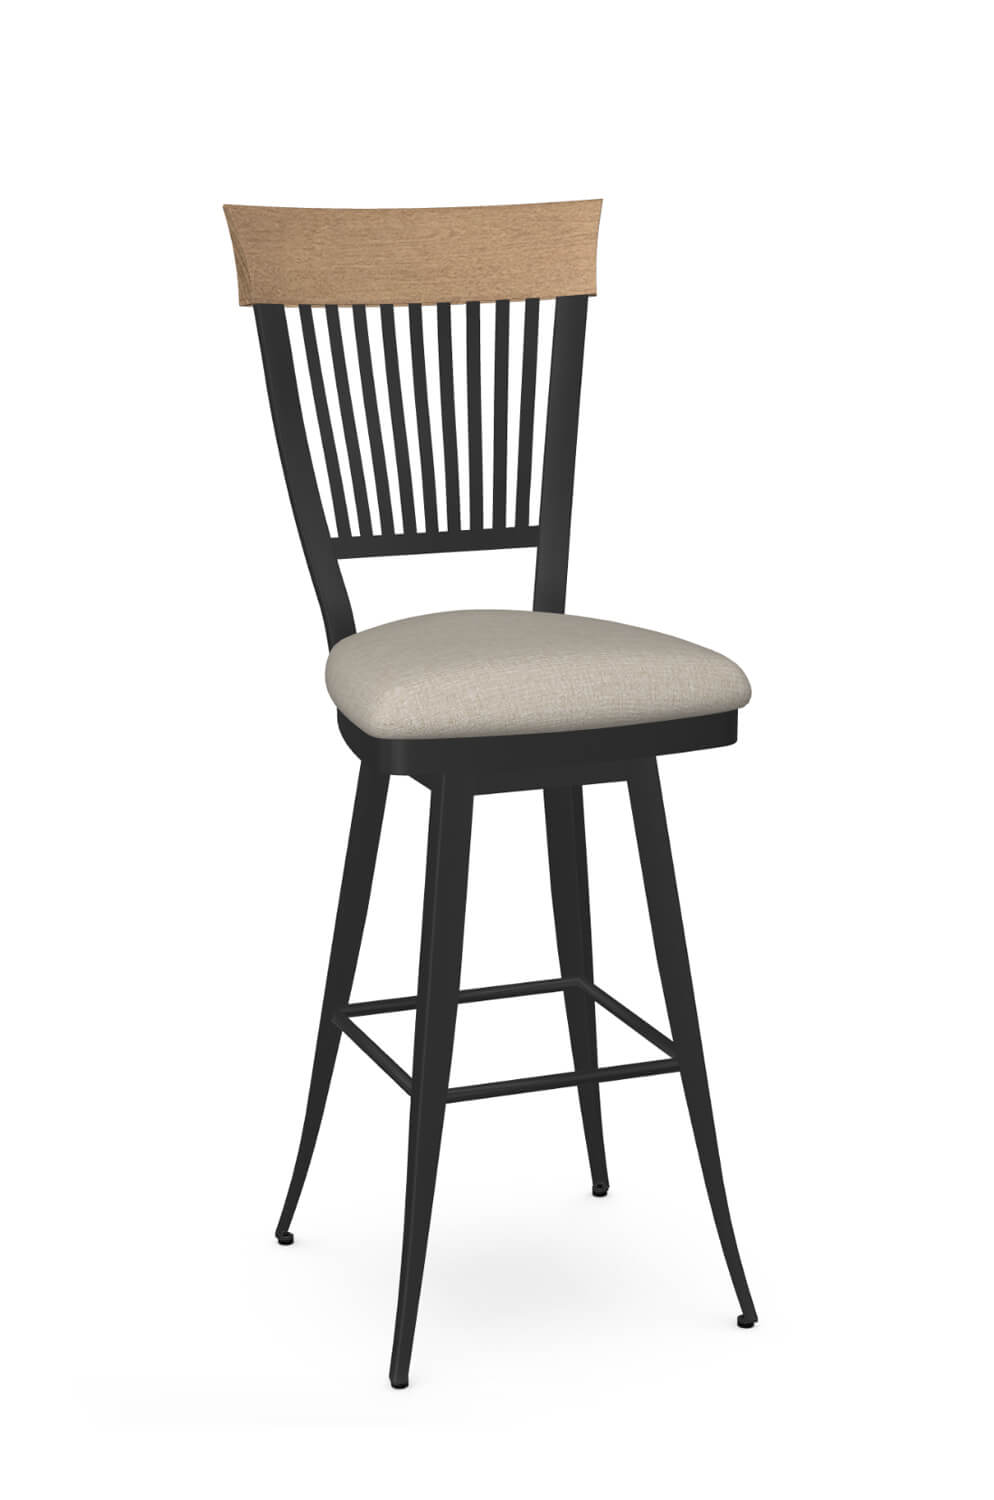 Annabelle Swivel Stool with Metal Frame, Distressed Wood Trim on Back and Seat Cushion